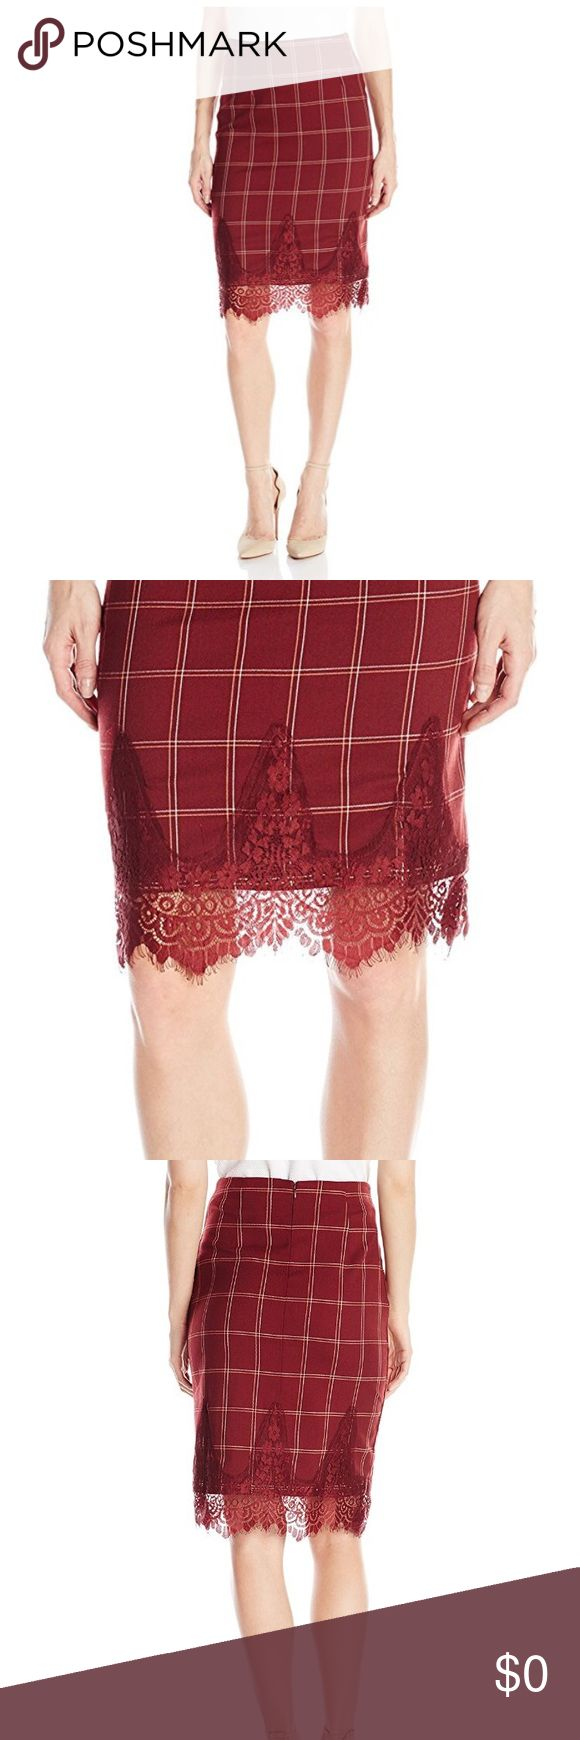 NWT Burgundy Lace Grid Mid-Length Skirt NWT Burgundy Lace Grid Mid-Length Skirt  100% Cotton Dry Clean Woven  Make Offer No Trades Blu Pepper Skirts Midi